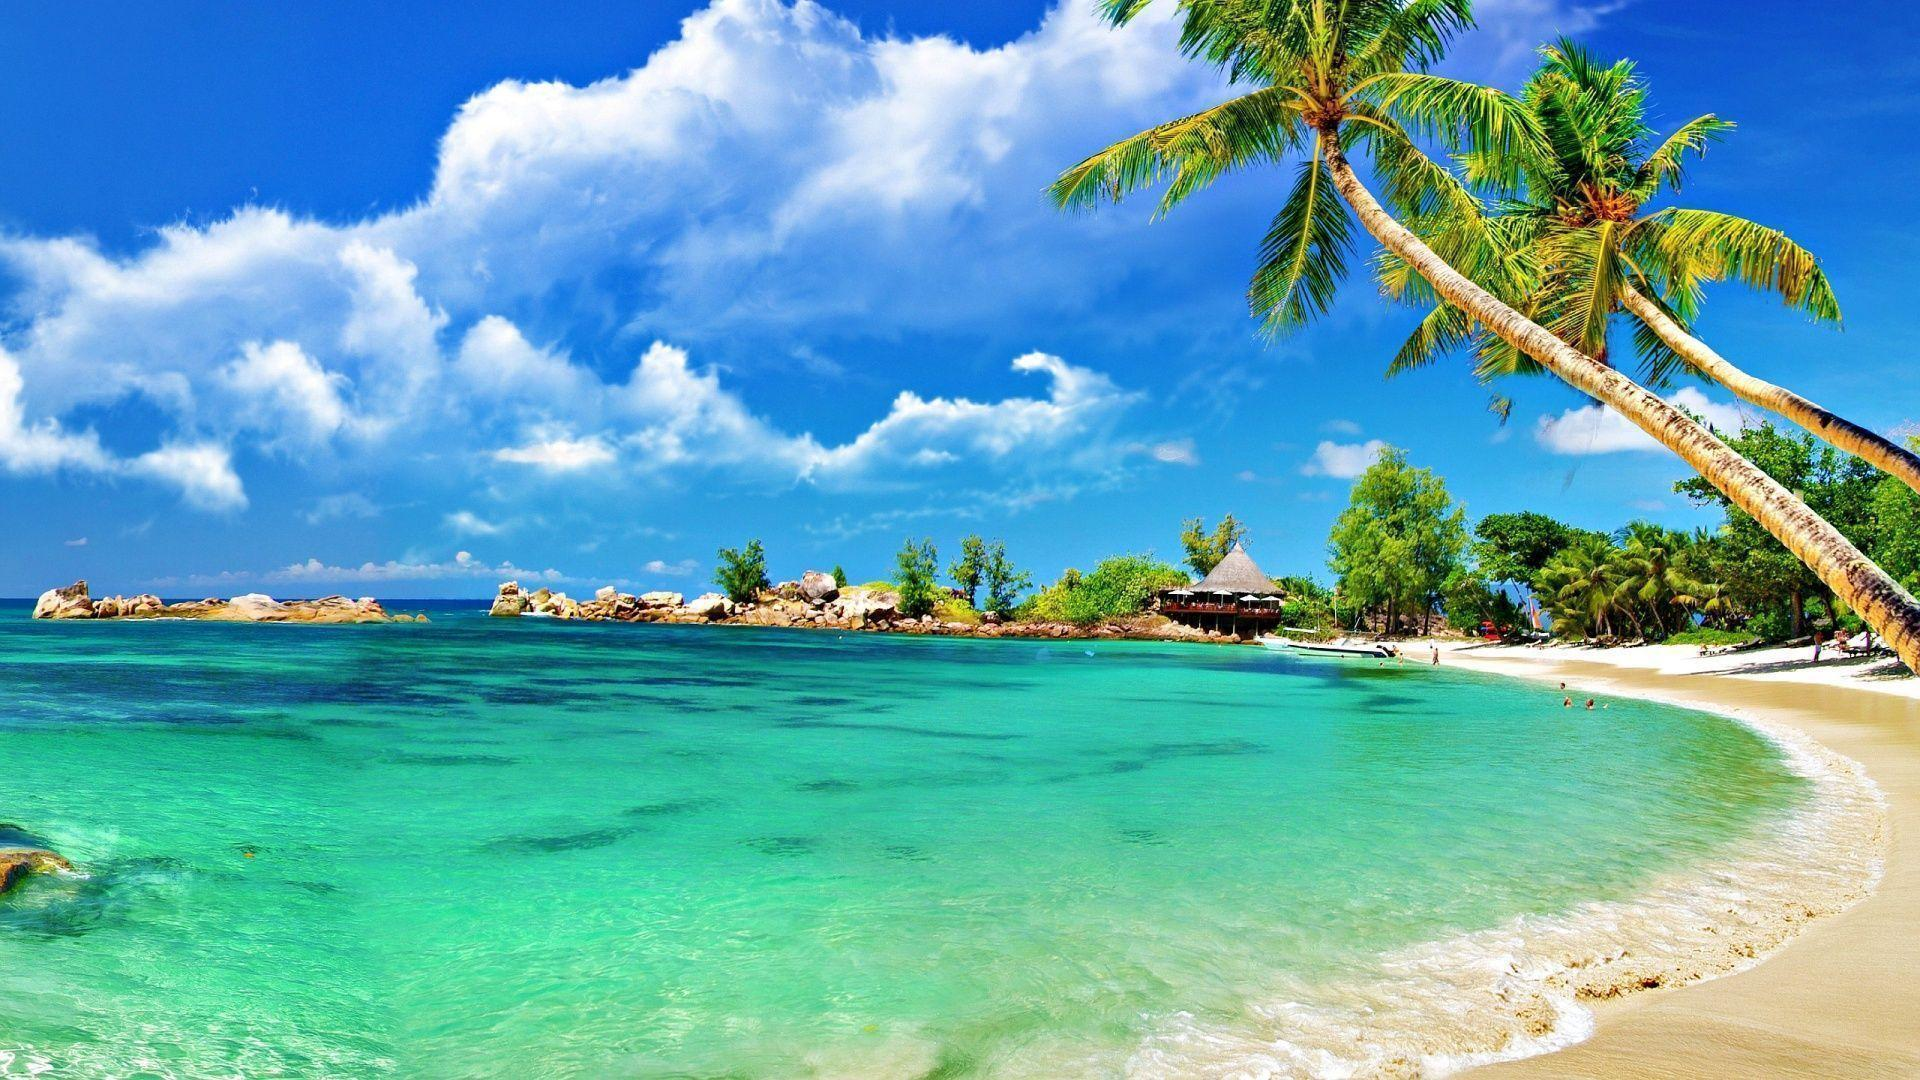 tropical resorts wallpaper background - photo #41